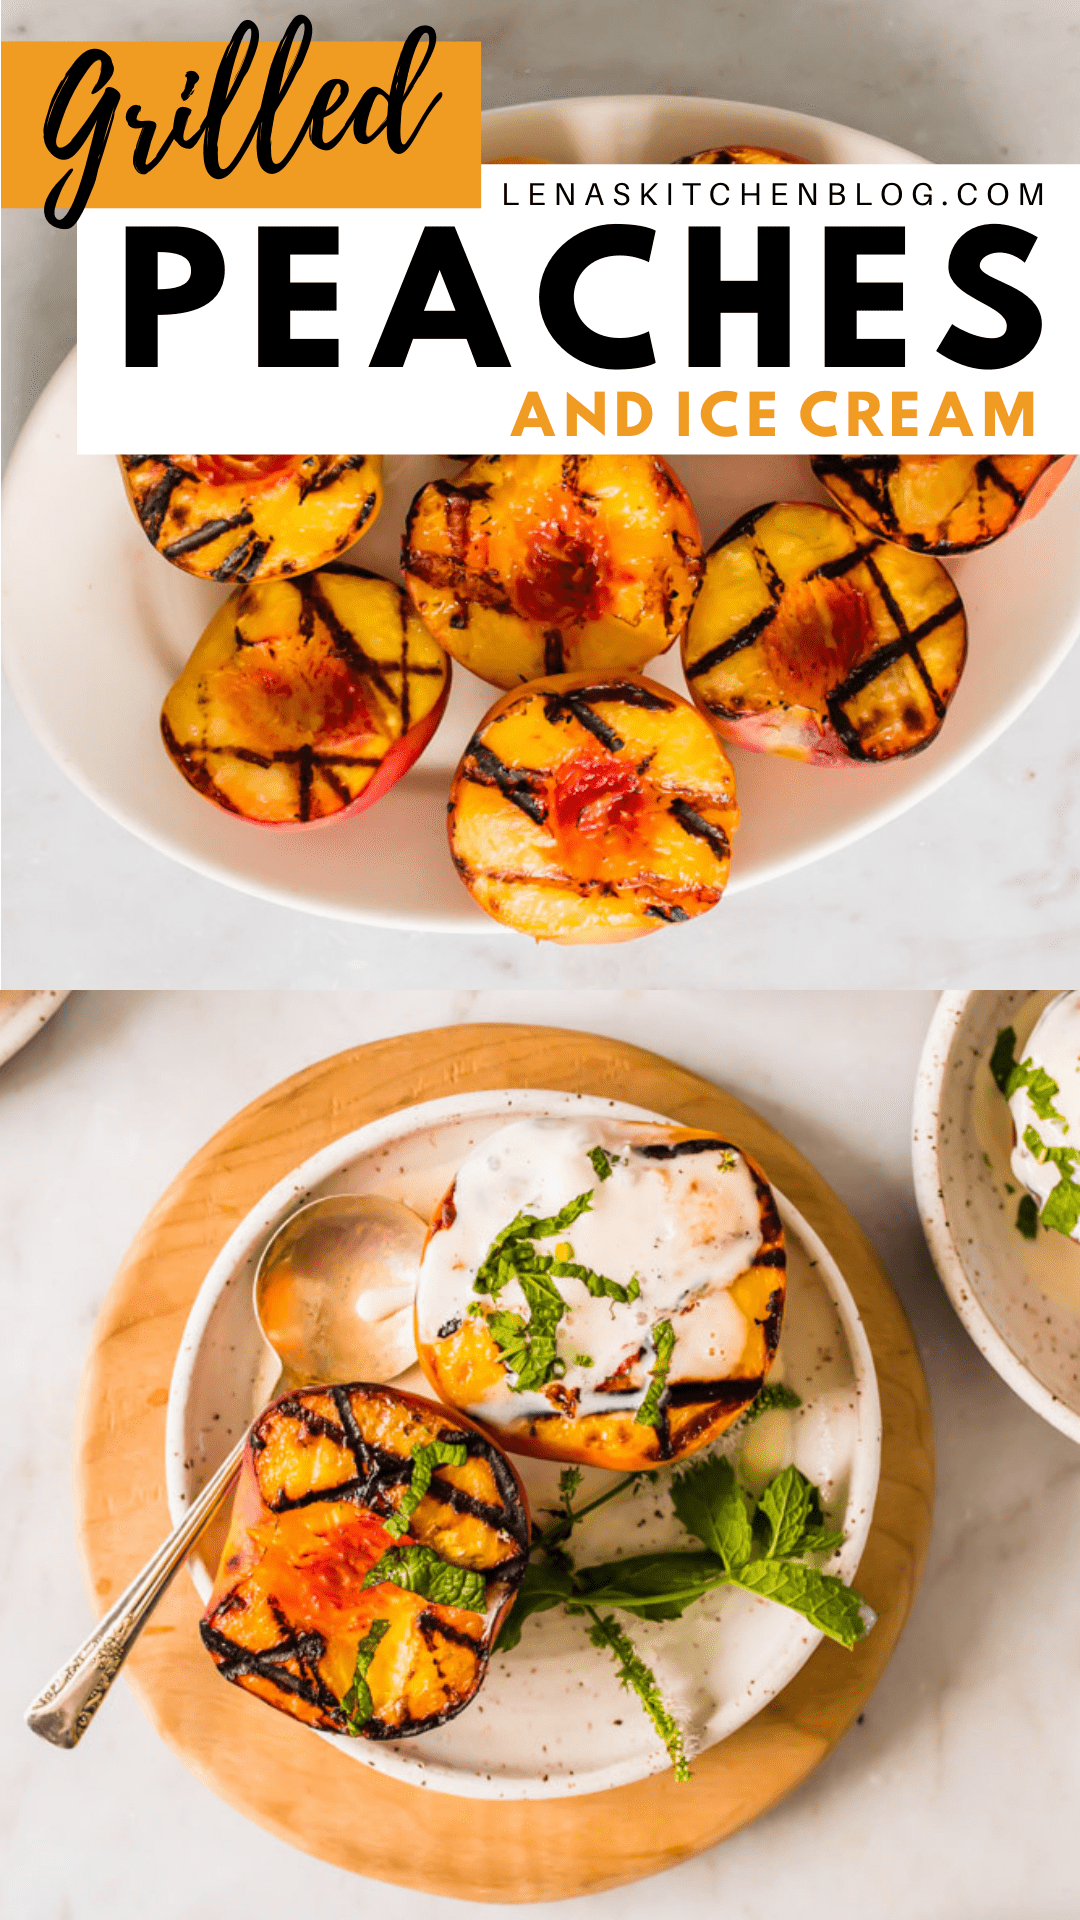 pinterest image of grilled peaches and ice cream on a white plate